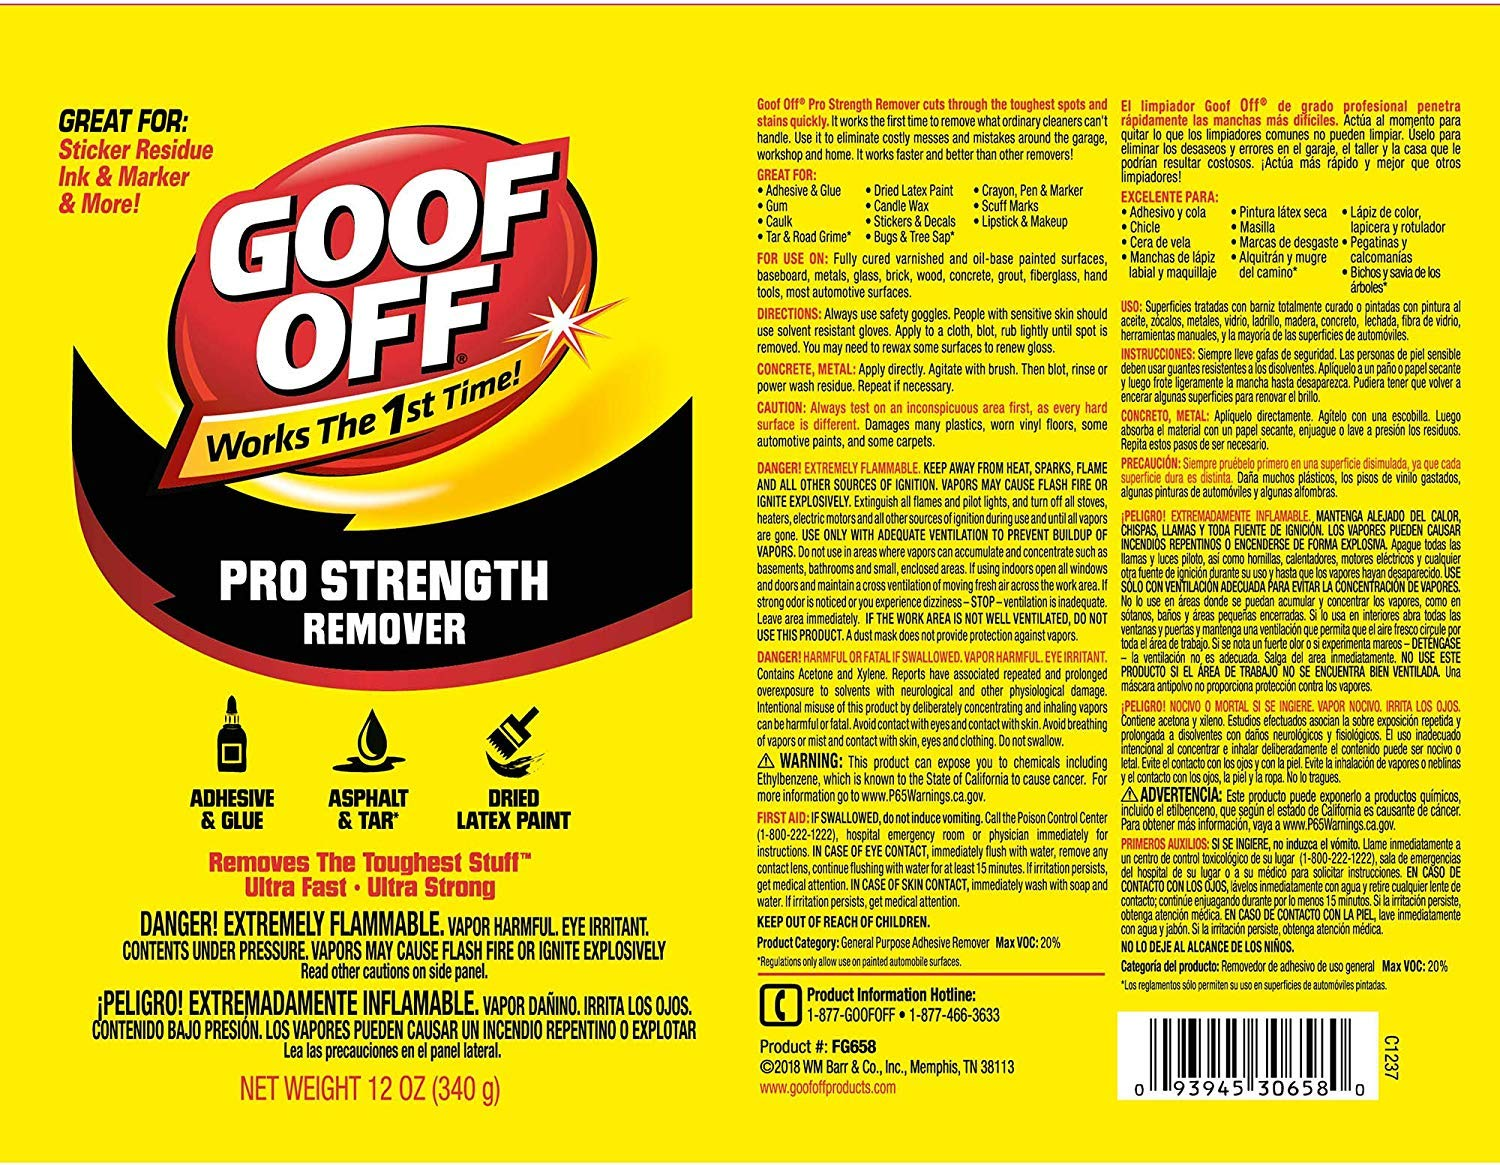 Goof Off FG658 Professional Strength Remover, Aerosol 12-Ounce (Thrее Рack) by Goof Off